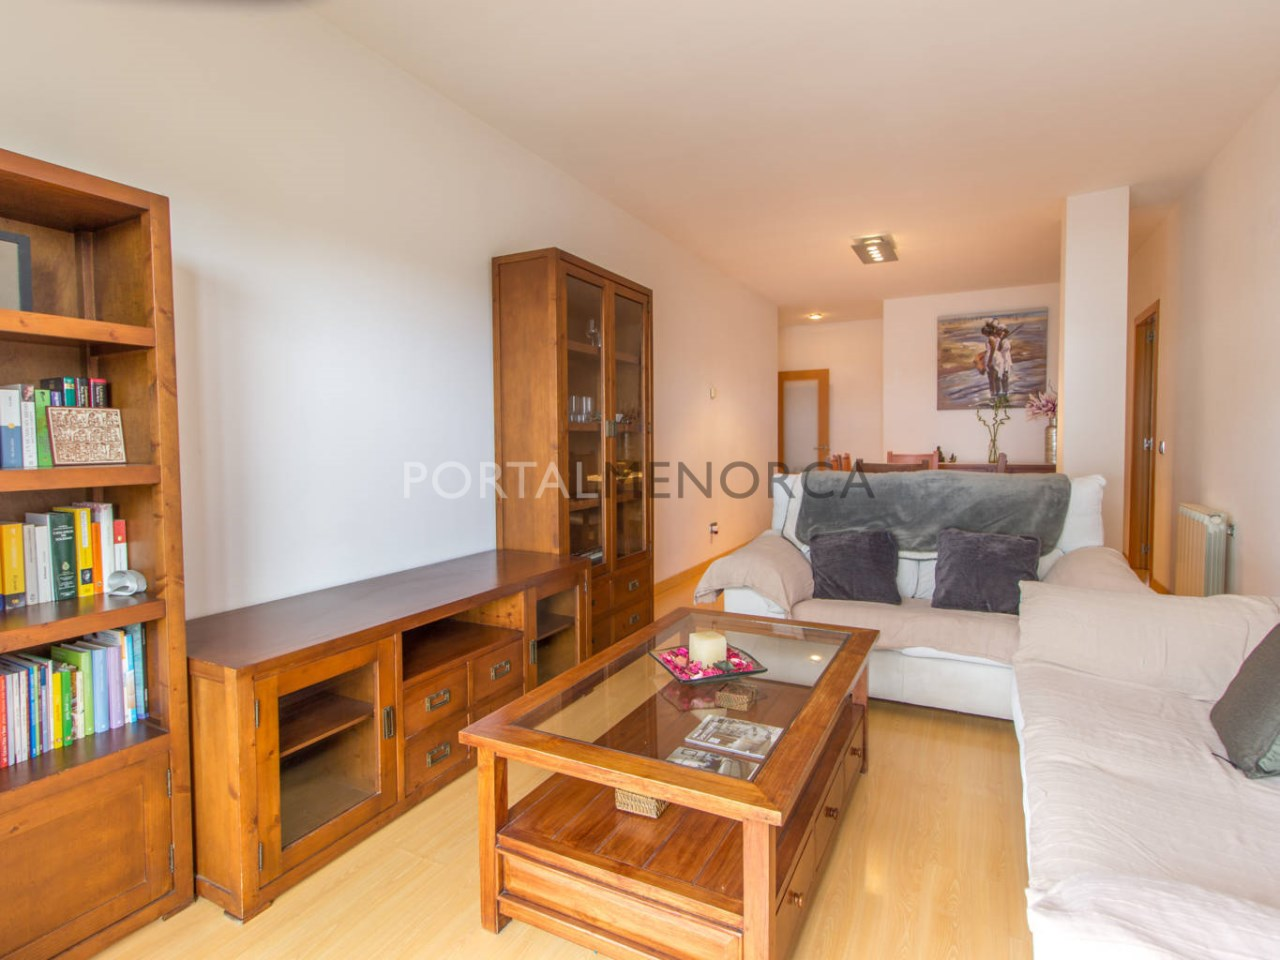 Apartment with terrace and parking for sale in Mahón